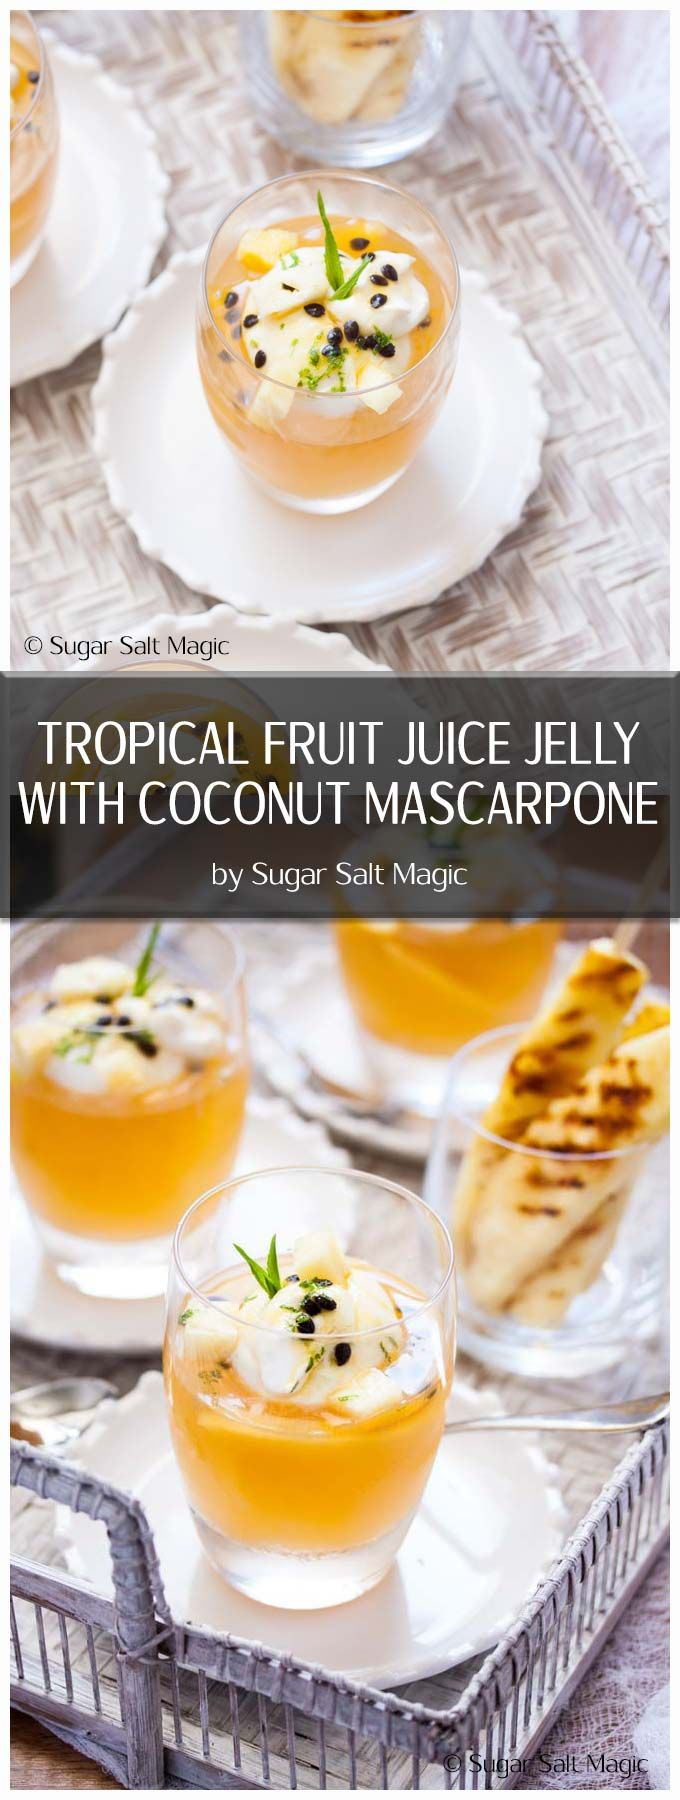 Refreshing Tropical Fruit Juice Jelly is a super easy homemade jelly dessert for a crowd (or a few). Add some coconut mascarpone to make it extra special. #fruitjuicejelly #easydessert via @sugarsaltmagic